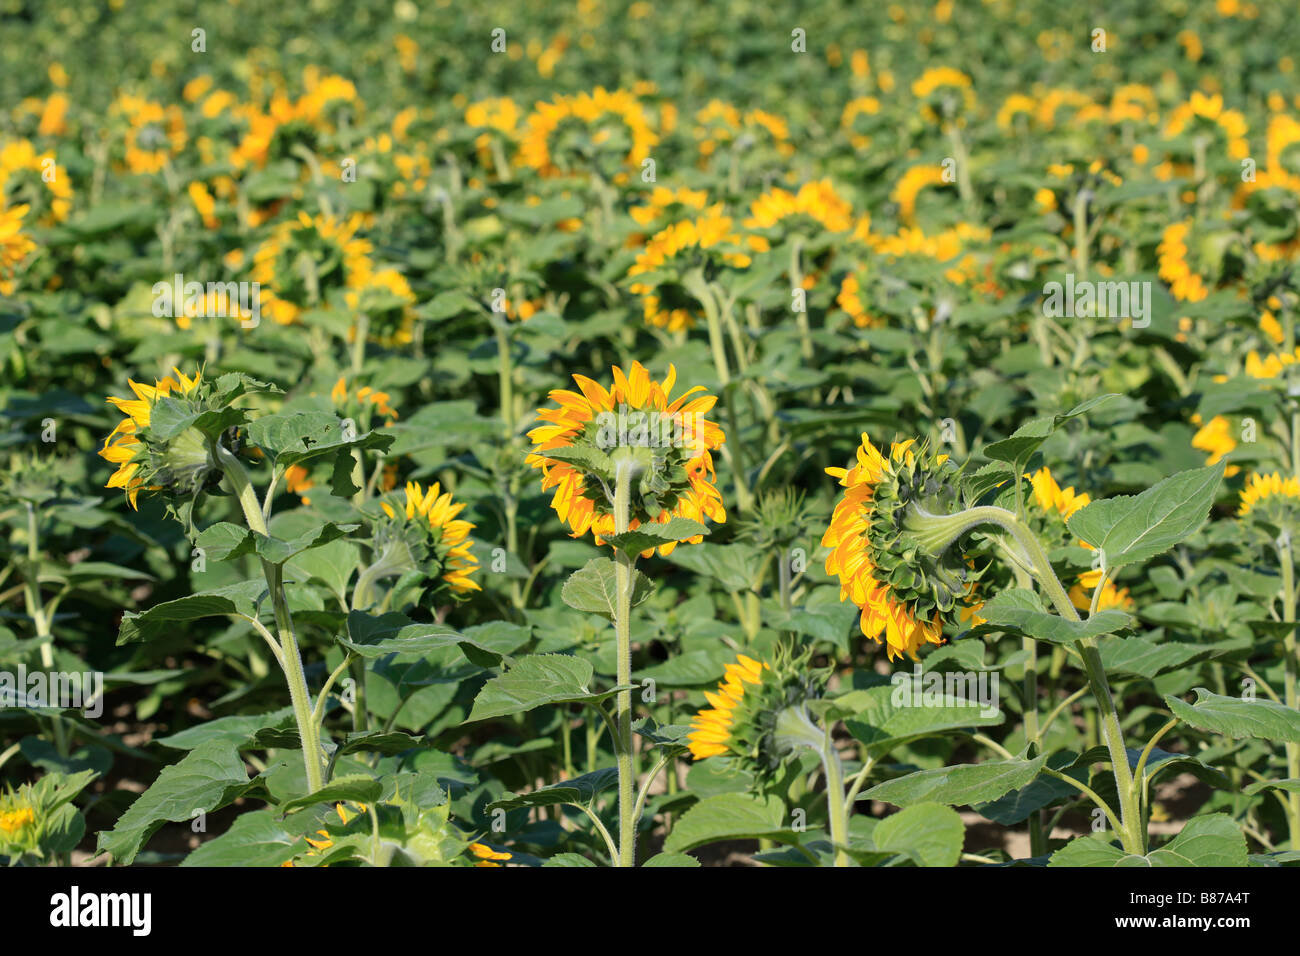 Close up of sunflower head in field - Stock Image